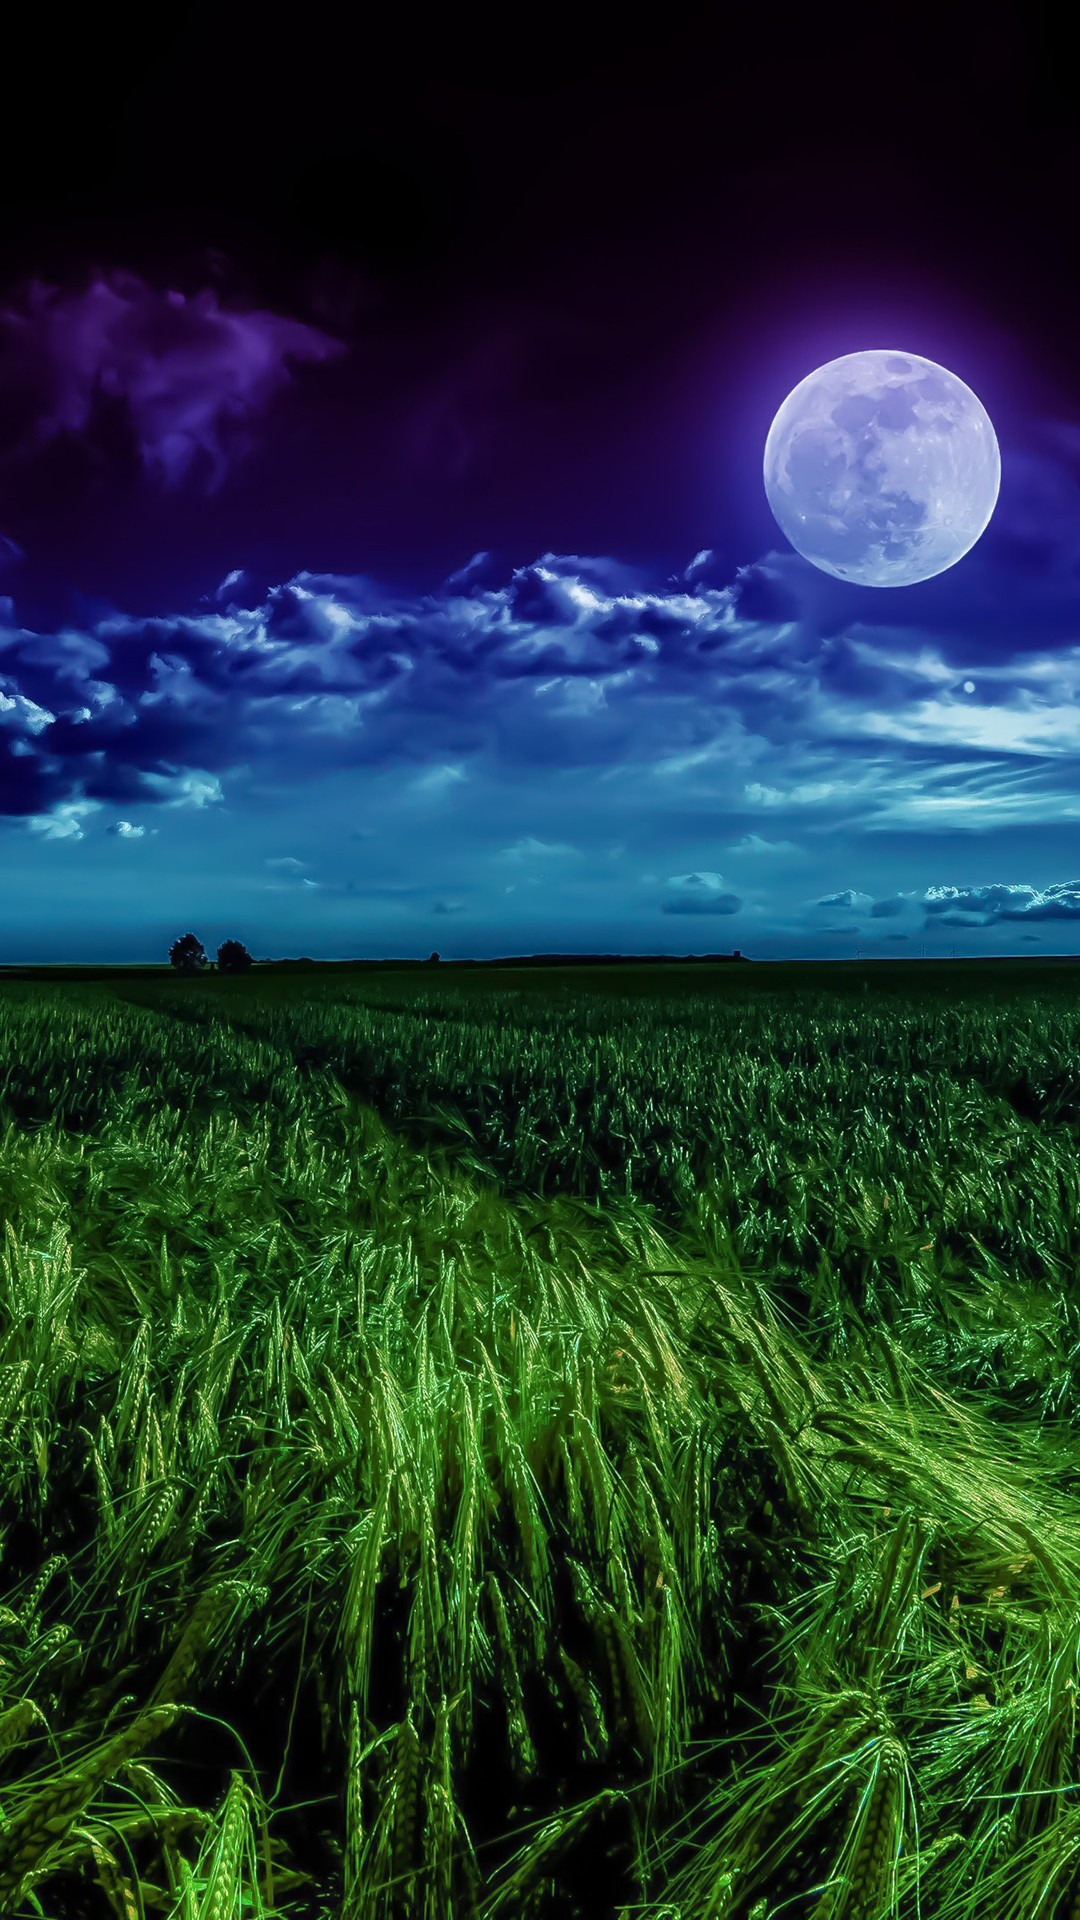 Desktop Wallpaper For Windows 7 Cars Grass Field Moon 4k Wallpapers Hd Wallpapers Id 25893